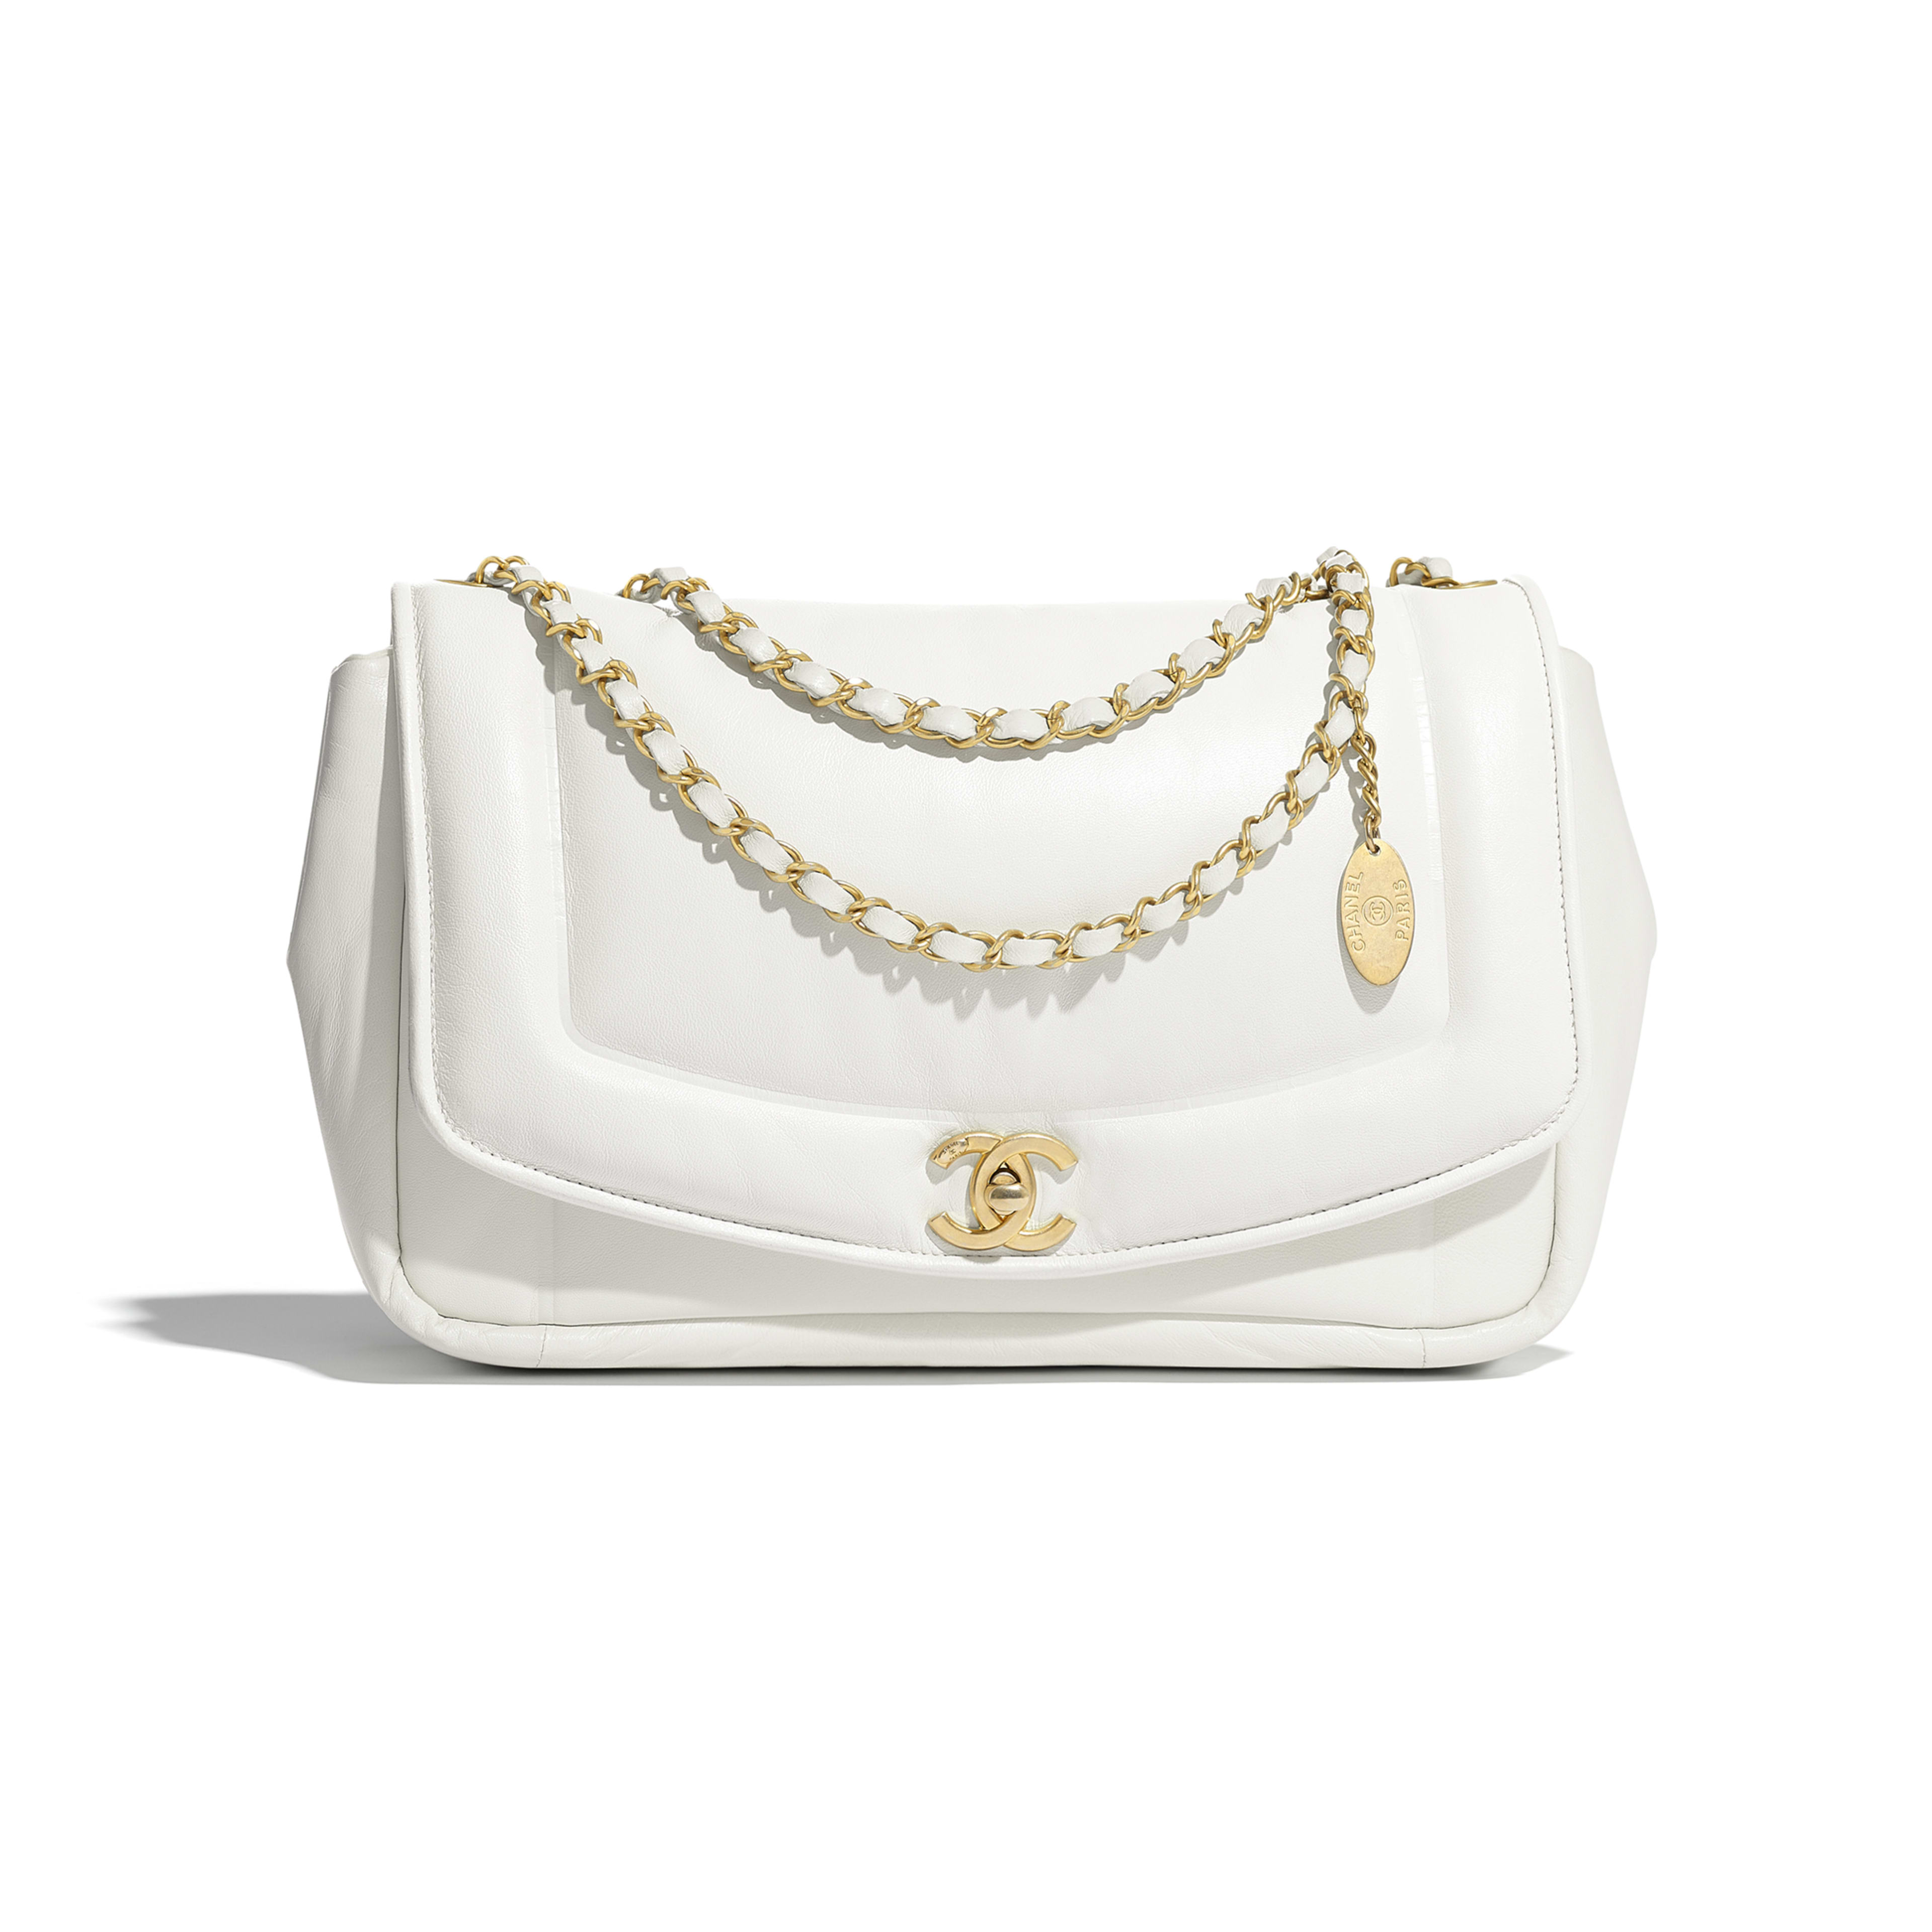 Flap Bag - White - Lambskin & Gold-Tone Metal - Default view - see full sized version